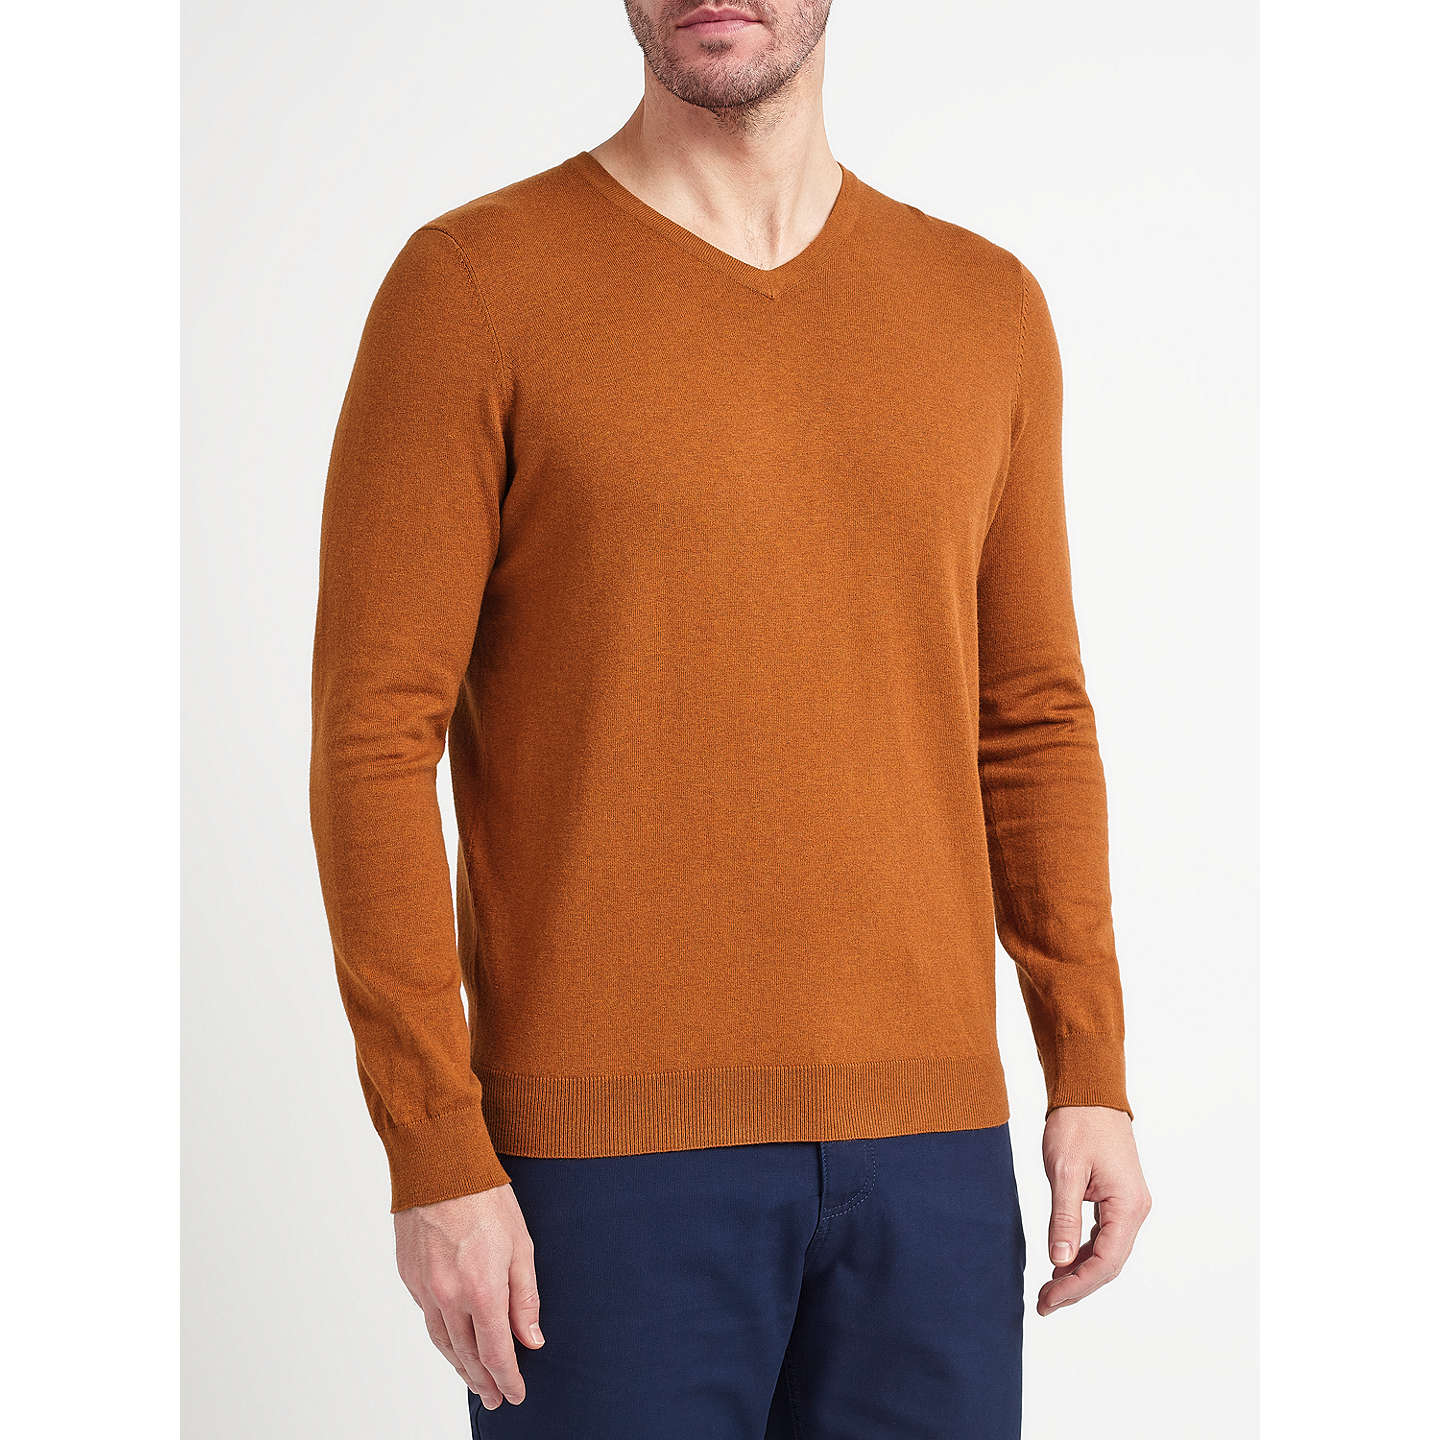 BuyJohn Lewis Cotton Blend V-Neck Jumper, Burnt Orange, S Online at johnlewis.com